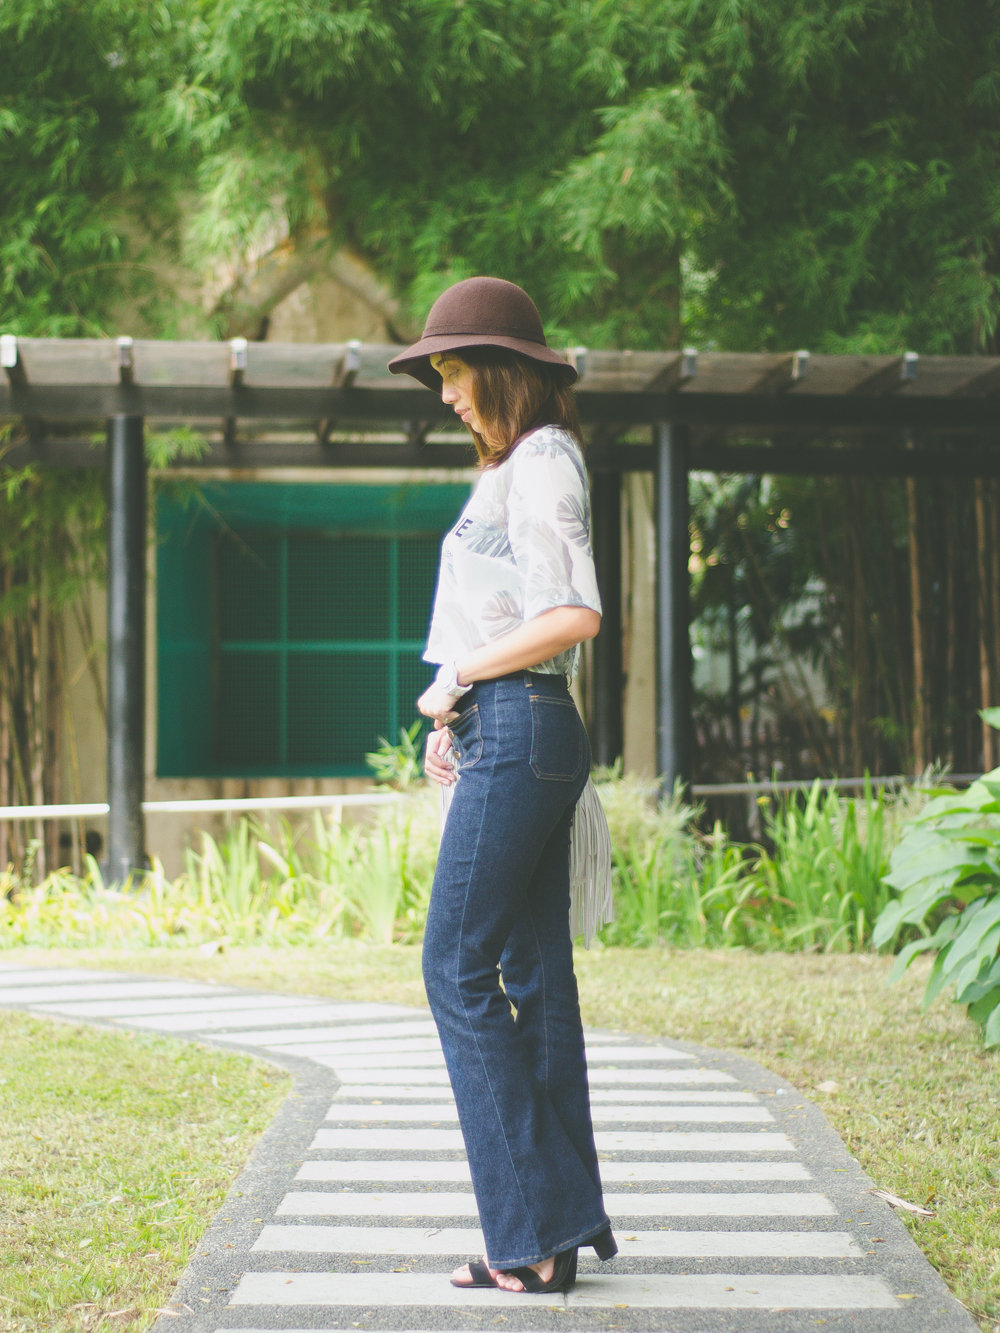 Cebu Fashion Bloggers, Cebu Bloggers, fashion bloggers, food bloggers, beauty blogger, cebu beauty blogger, lifestyle bloggers, asian blogger, cebu, philippines, social influencer, online influencer, philippine bloggers, philippine fashion bloggers, toni pino-oca, Cebu Fashion Bloggers network. flared pants, flares, bell-bottoms, flare pants, seventies trend, seventies fashion